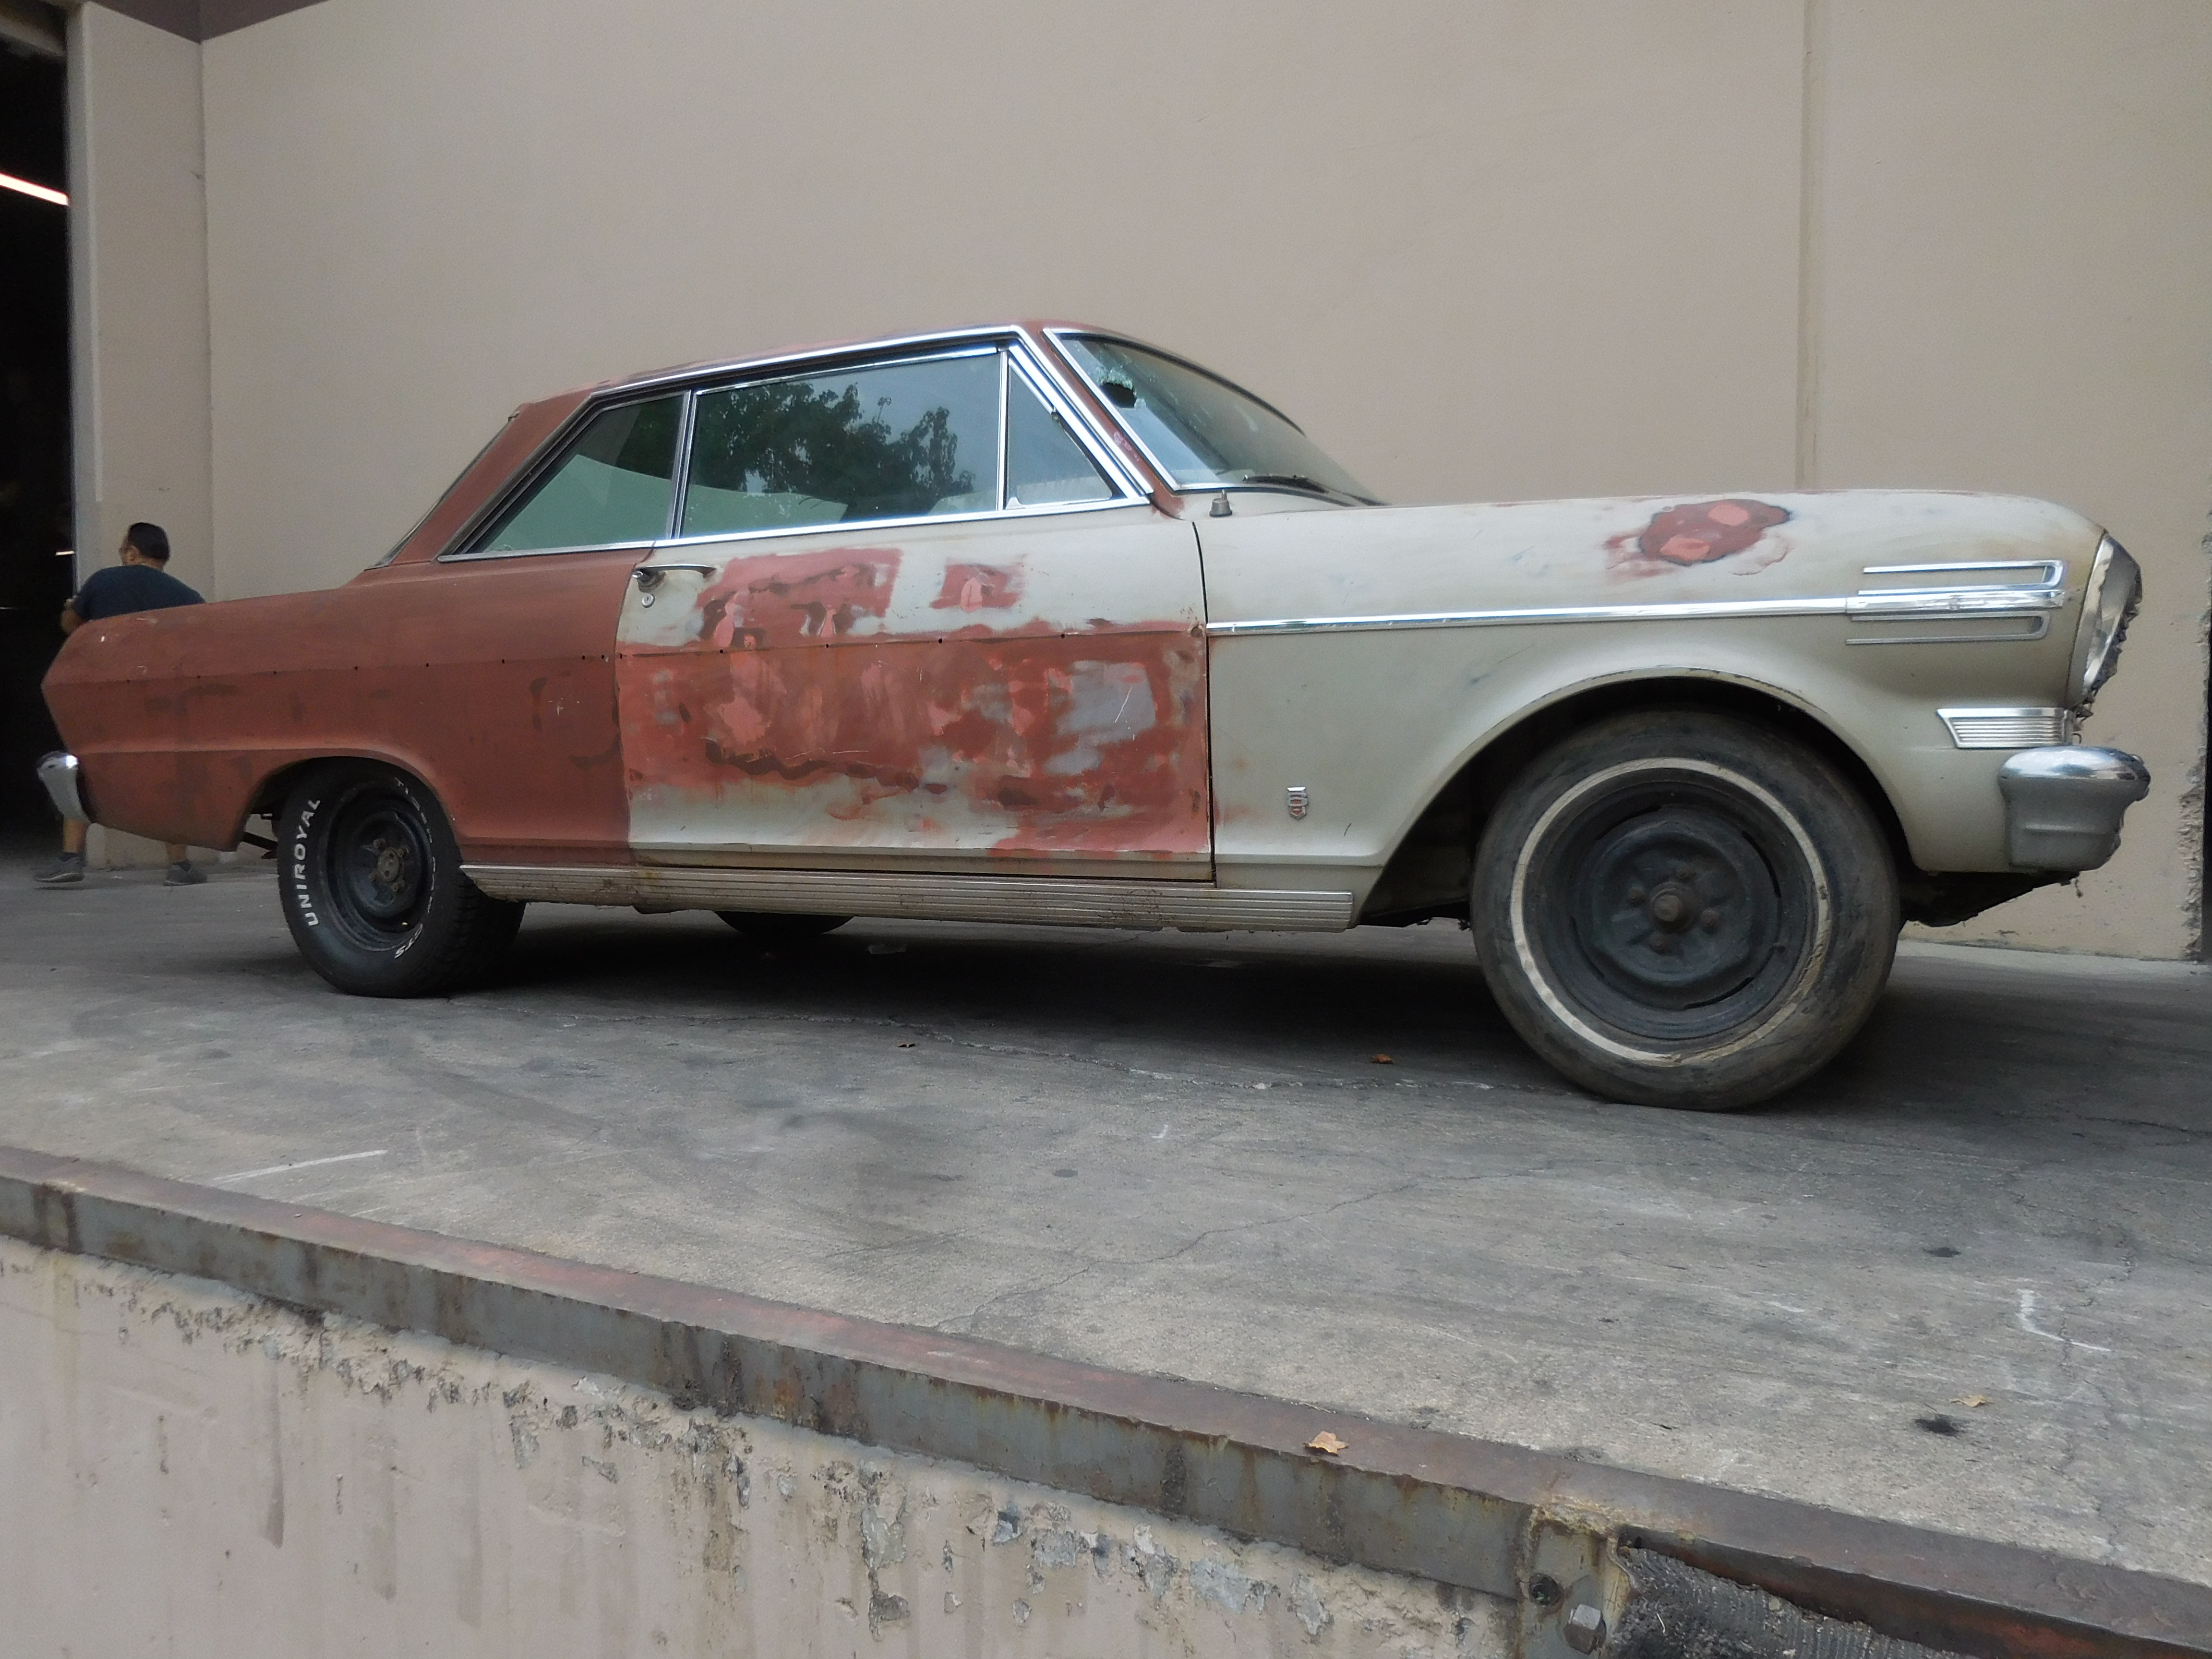 1962, Chevrolet, Nova, L6, AT, Rust, Free, Project, Car For Sale,car,for,sale,